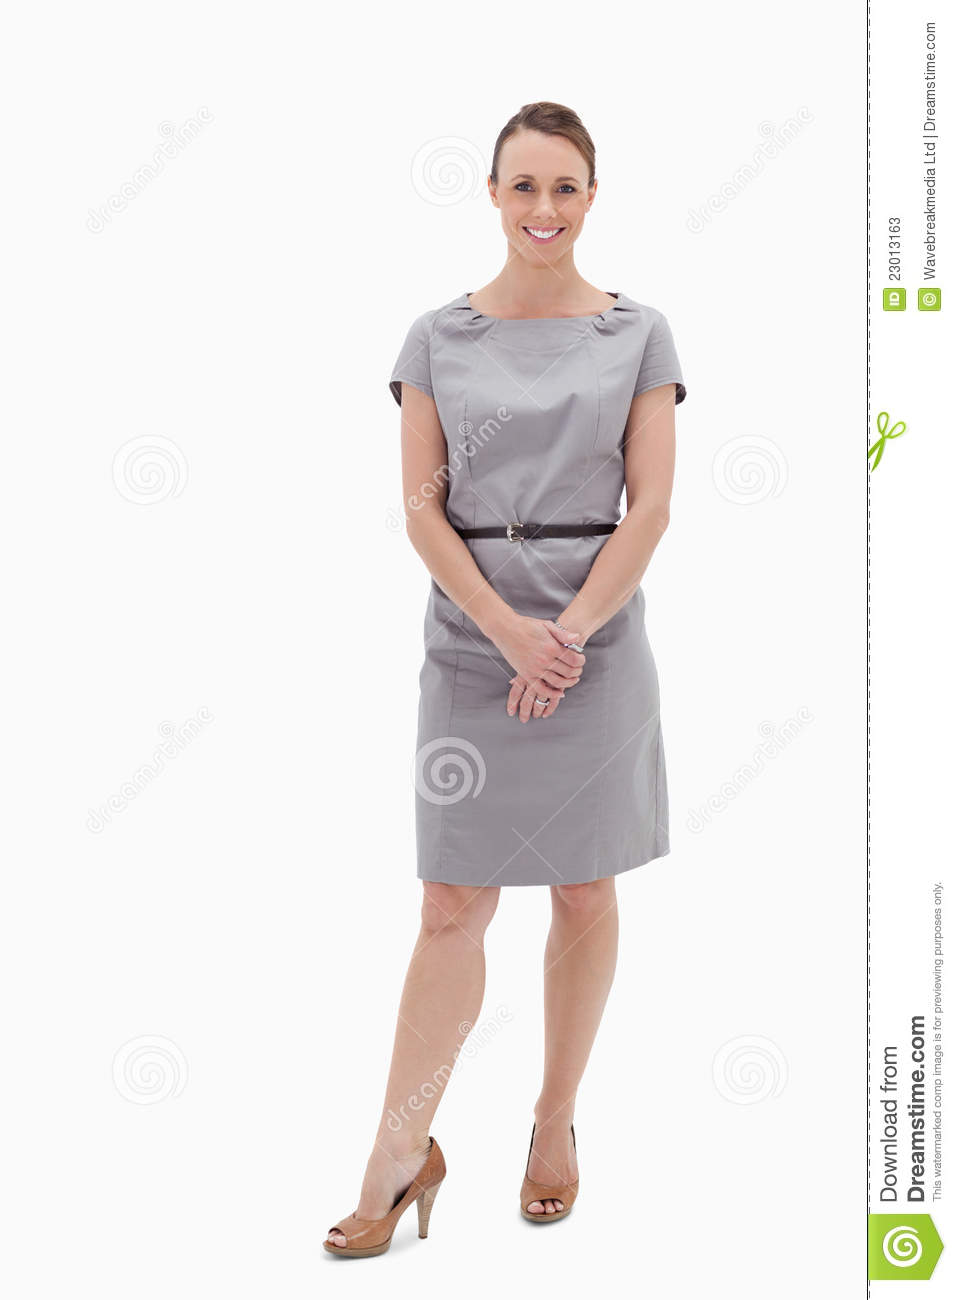 Smiling Woman Standing Up And Holding Her Hands Stock ...